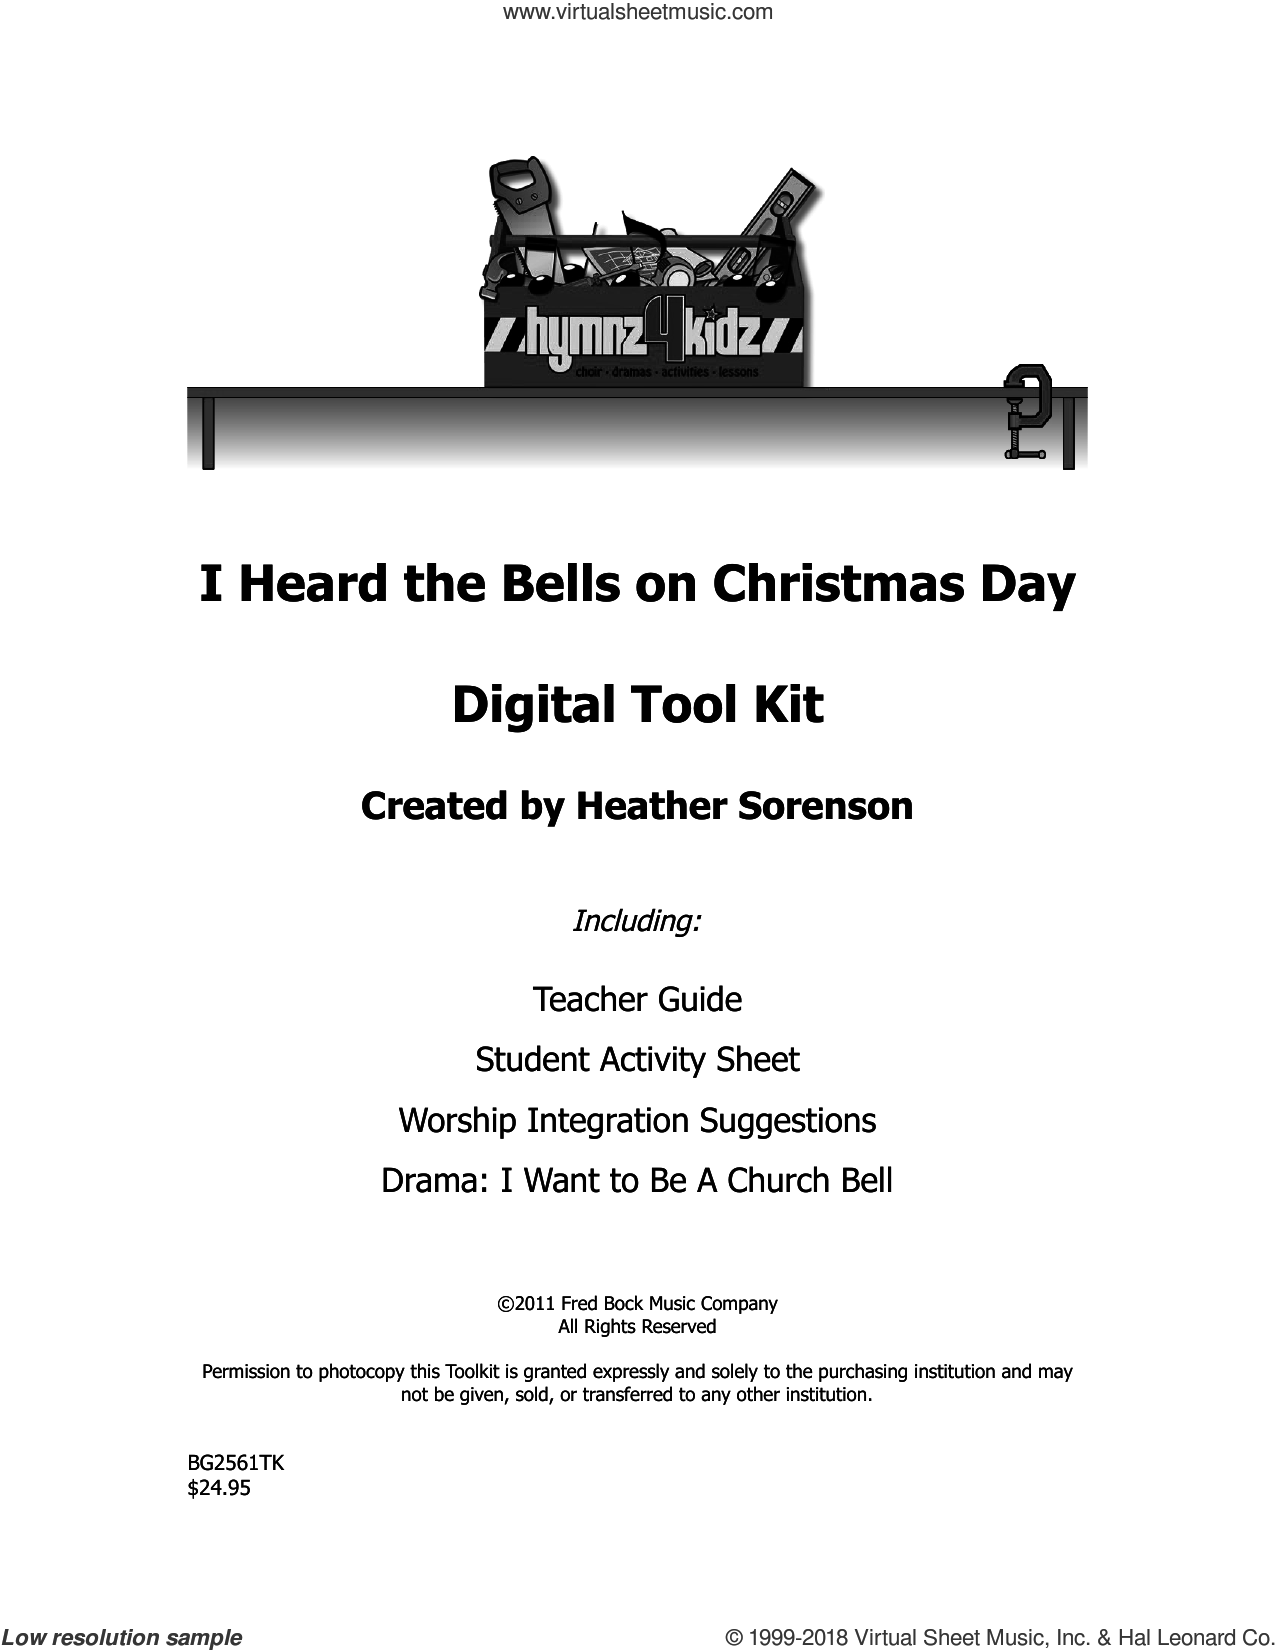 I Heard The Bells On Christmas Day sheet music for choir (choral tool kit) by Heather Sorenson and Henry Wadsworth Longfellow, intermediate. Score Image Preview.